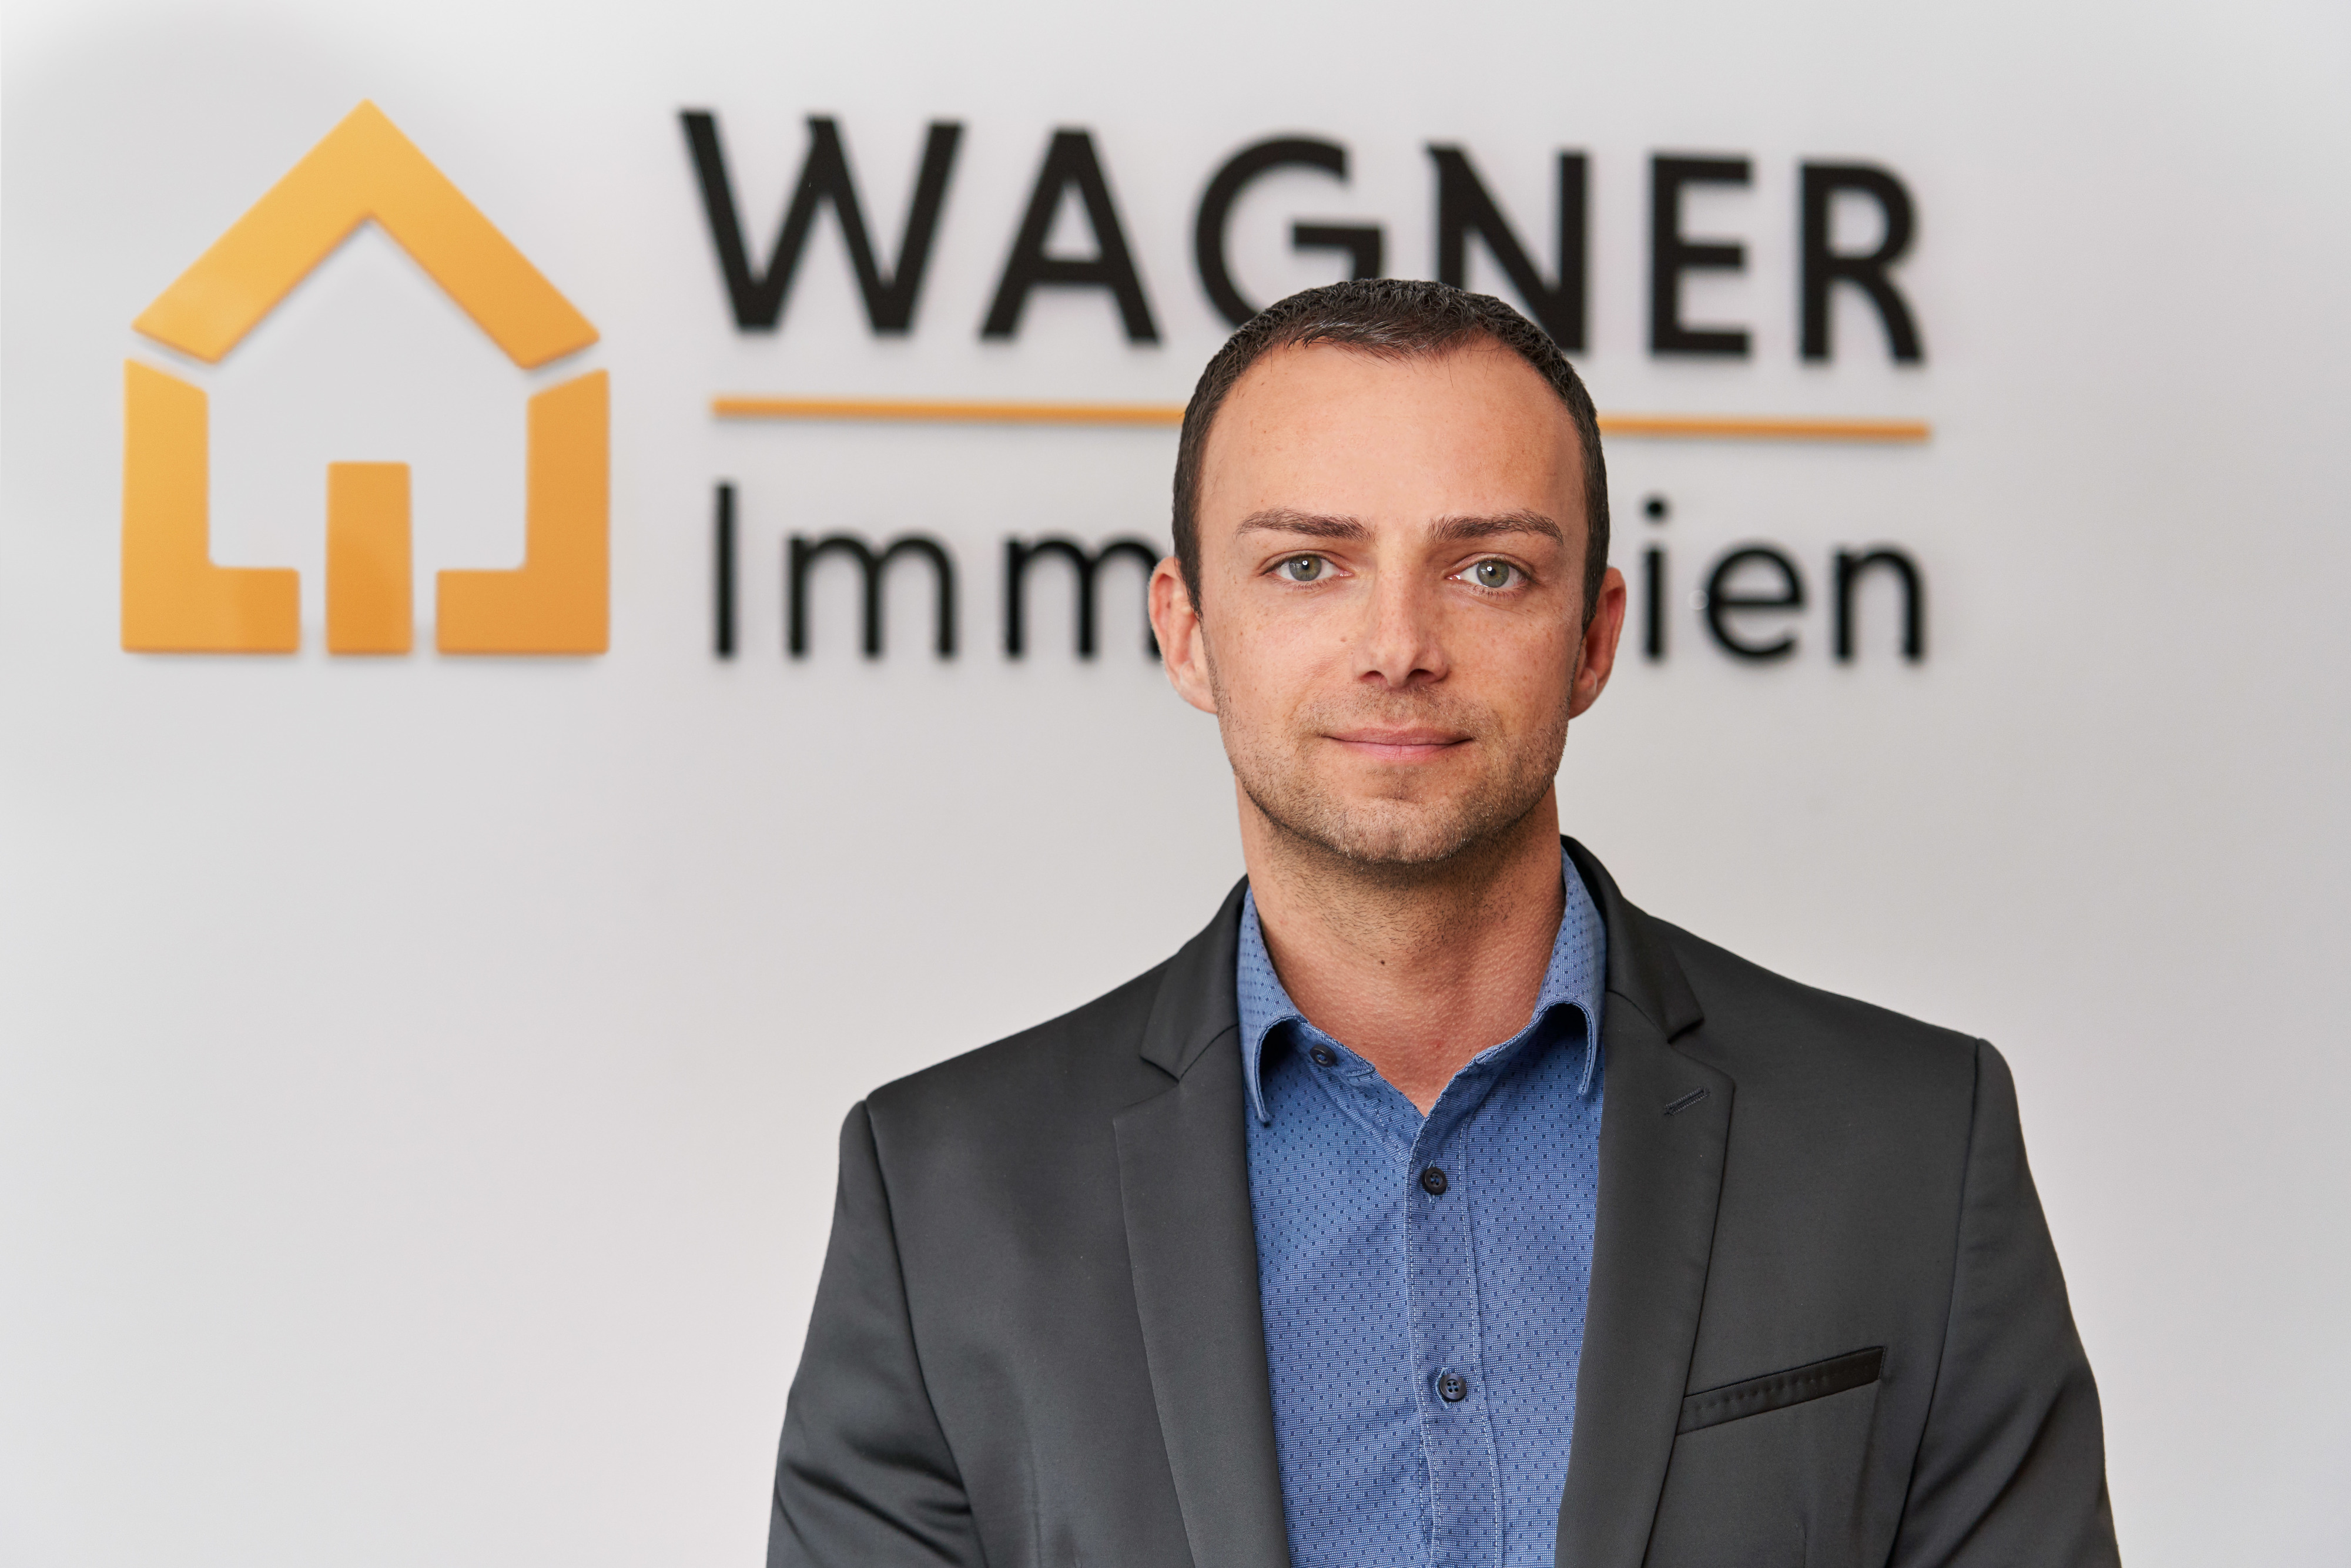 Wagner Immobilien in Mainz